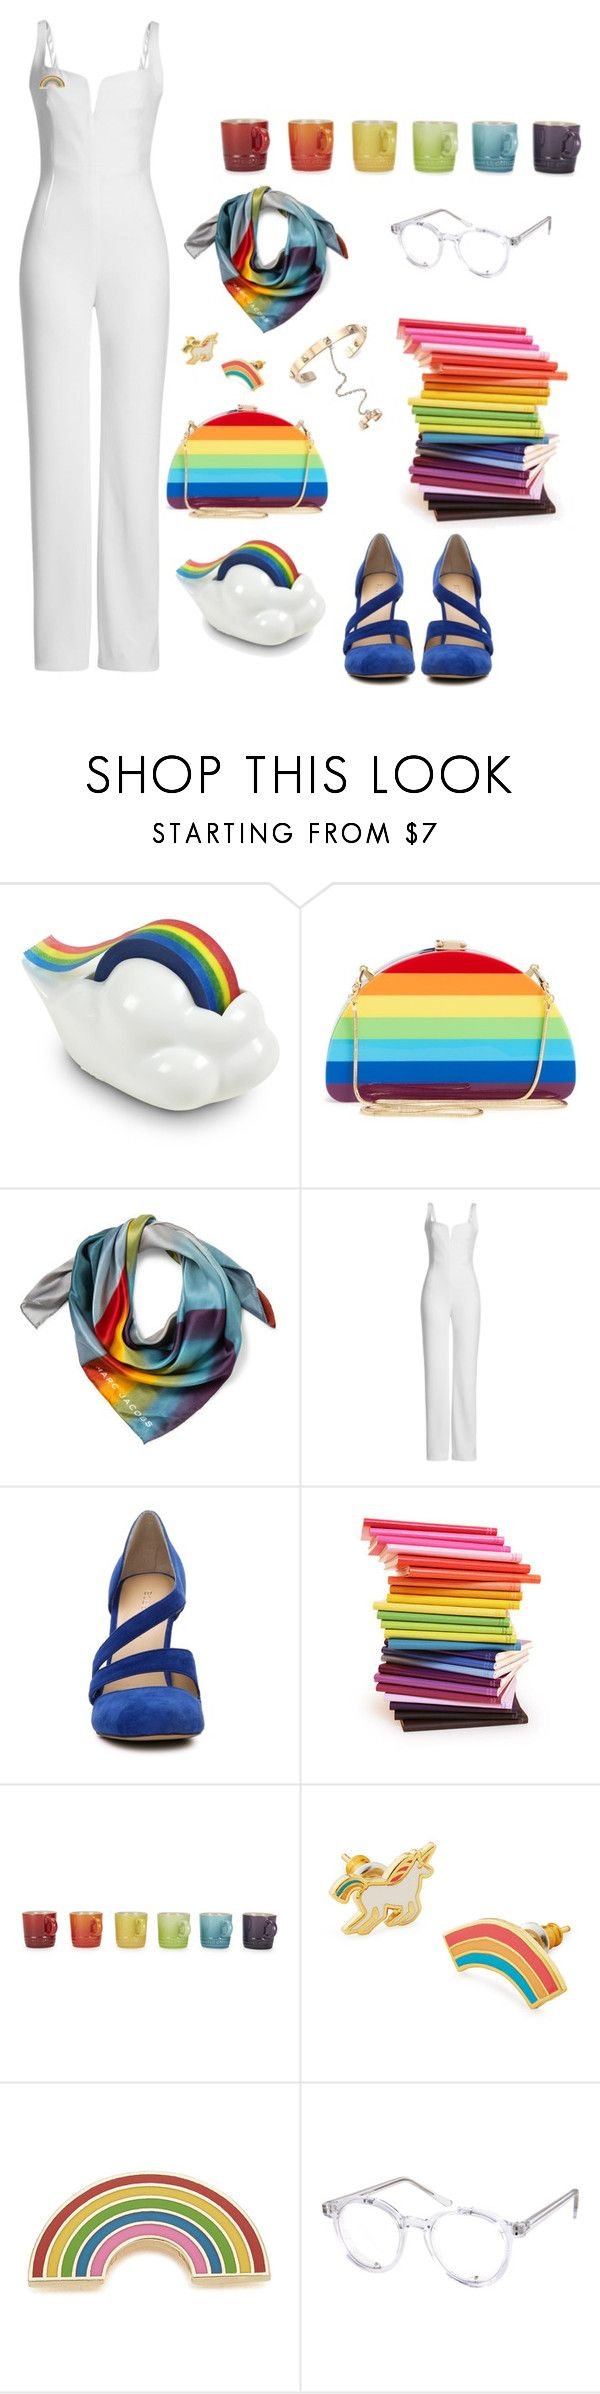 """Rainbow office"" by rebellious-ingenue ❤ liked on Polyvore featuring Fred & Friends, Milly, Marc Jacobs, Galvan, BCBGeneration, Paperthinks, Le Creuset, Yellow Owl Workshop, Georgia Perry and Spitfire"